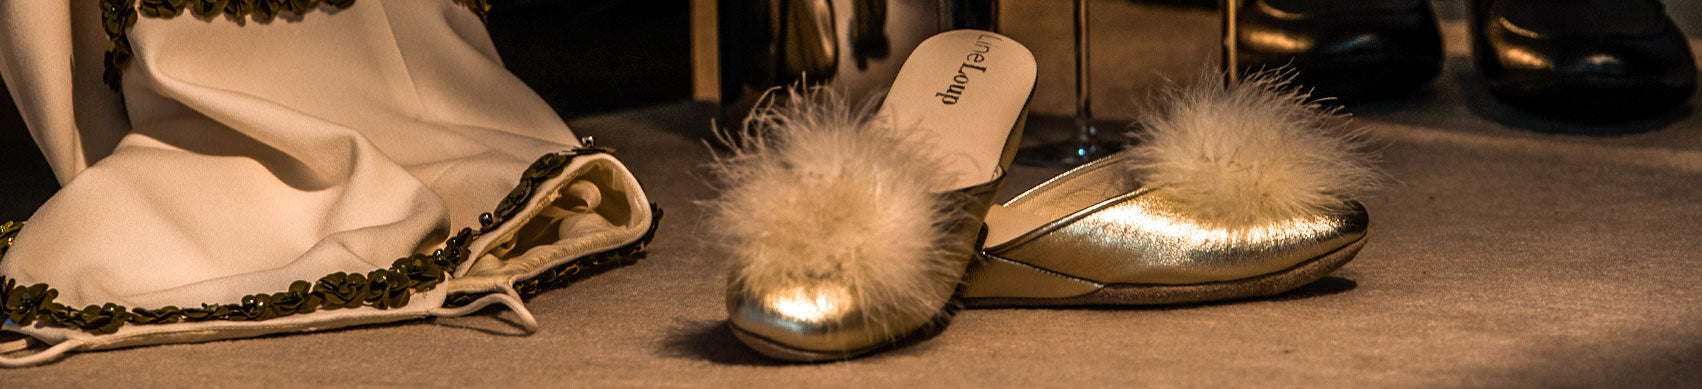 Slippers for Women - Luxury slippers to be elegant and chic at home!